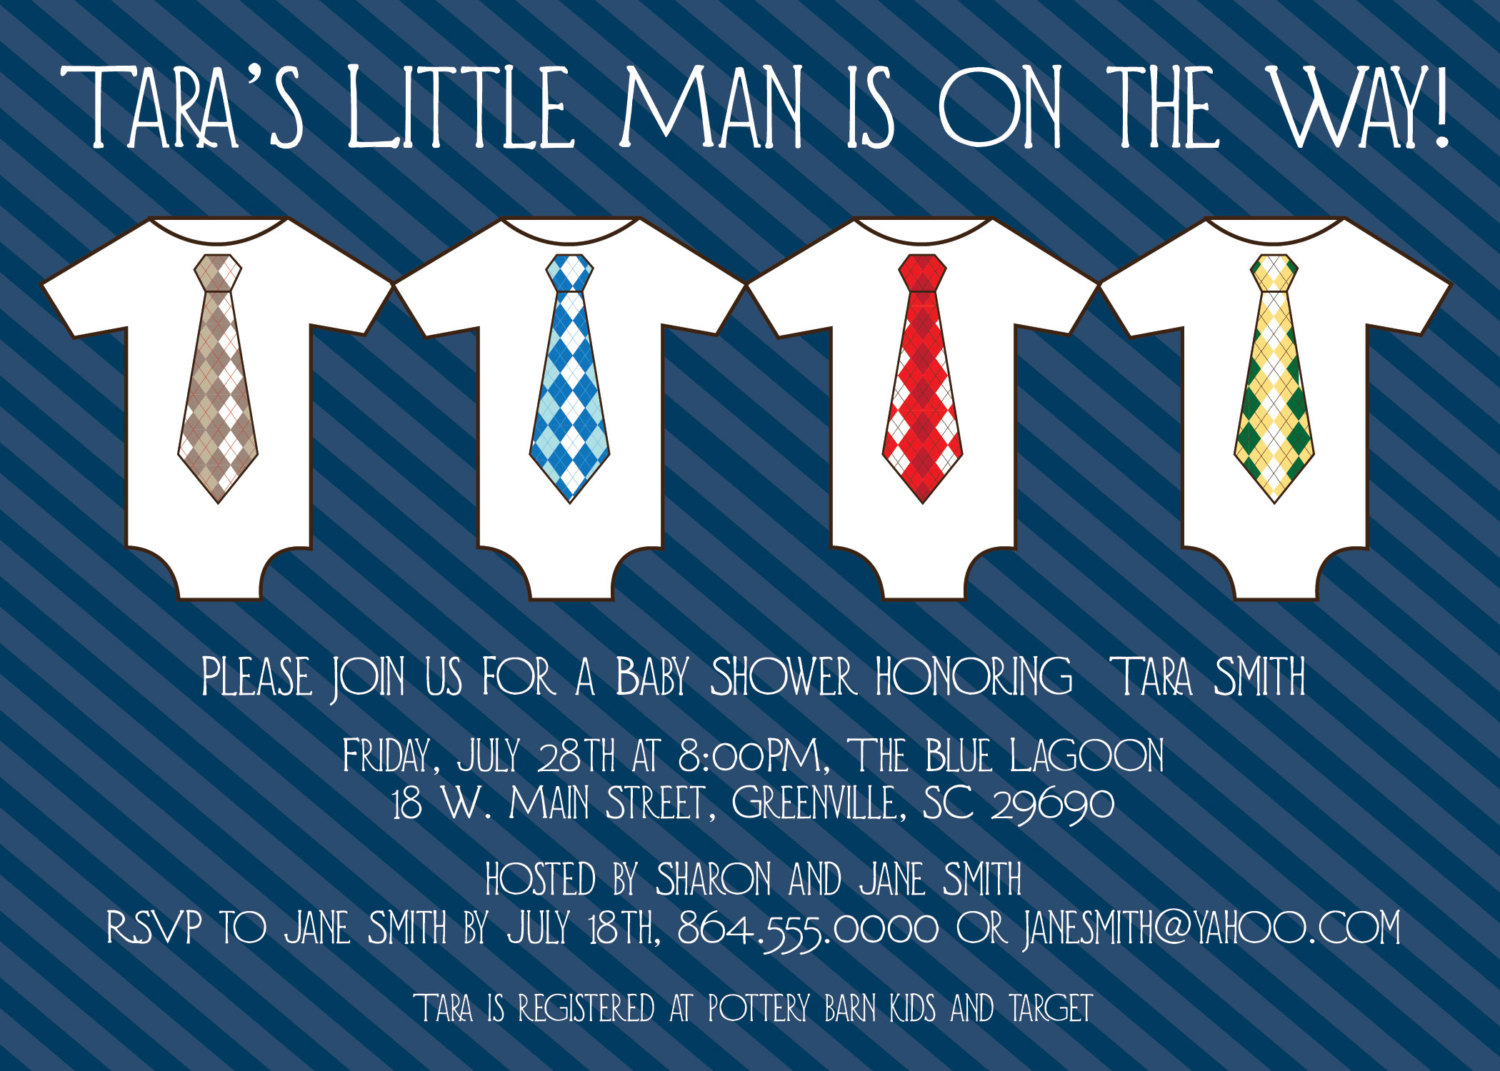 Baby Shower Invitations, Little Man, Little Guy, Manly, Macho ...